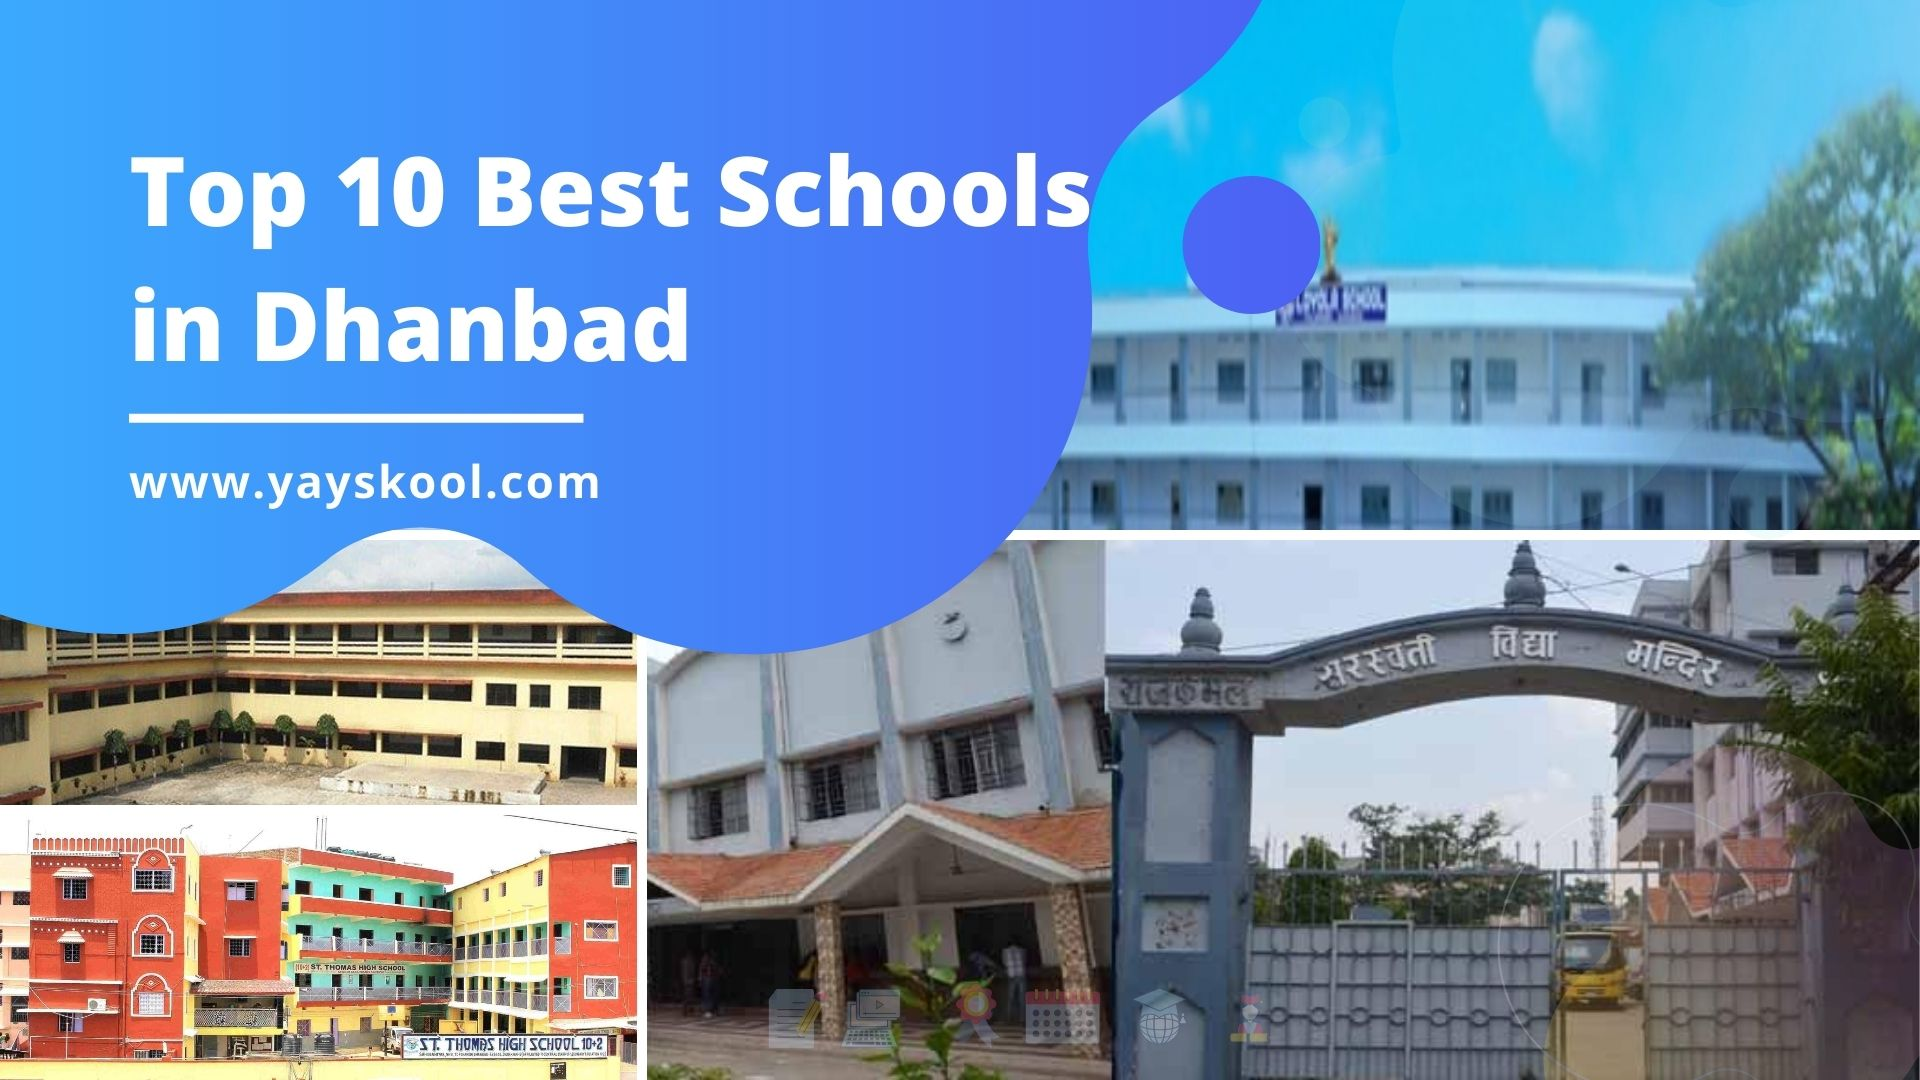 Top 10 Best Schools in Dhanbad